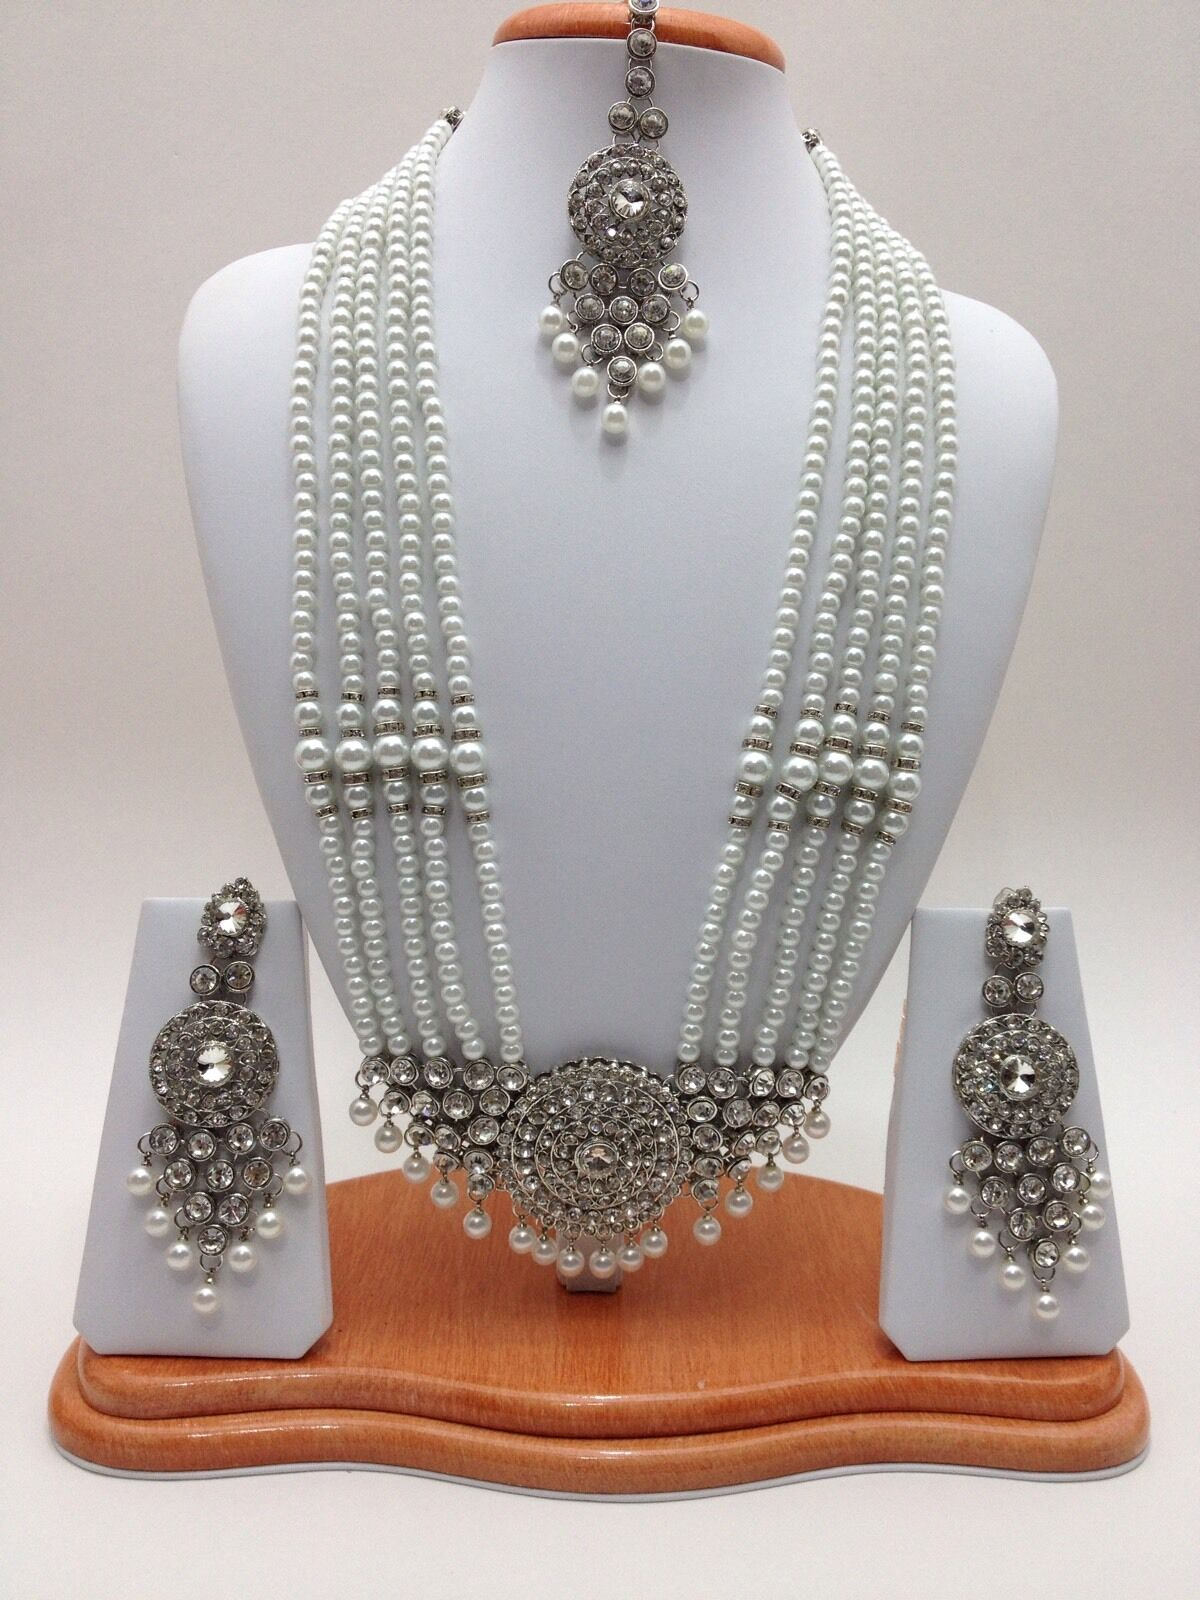 Indiano Indiano Indiano Nuziale Gioielli Rani Haar Collana Set Bollywood Party Etnica Wear f8b3d5